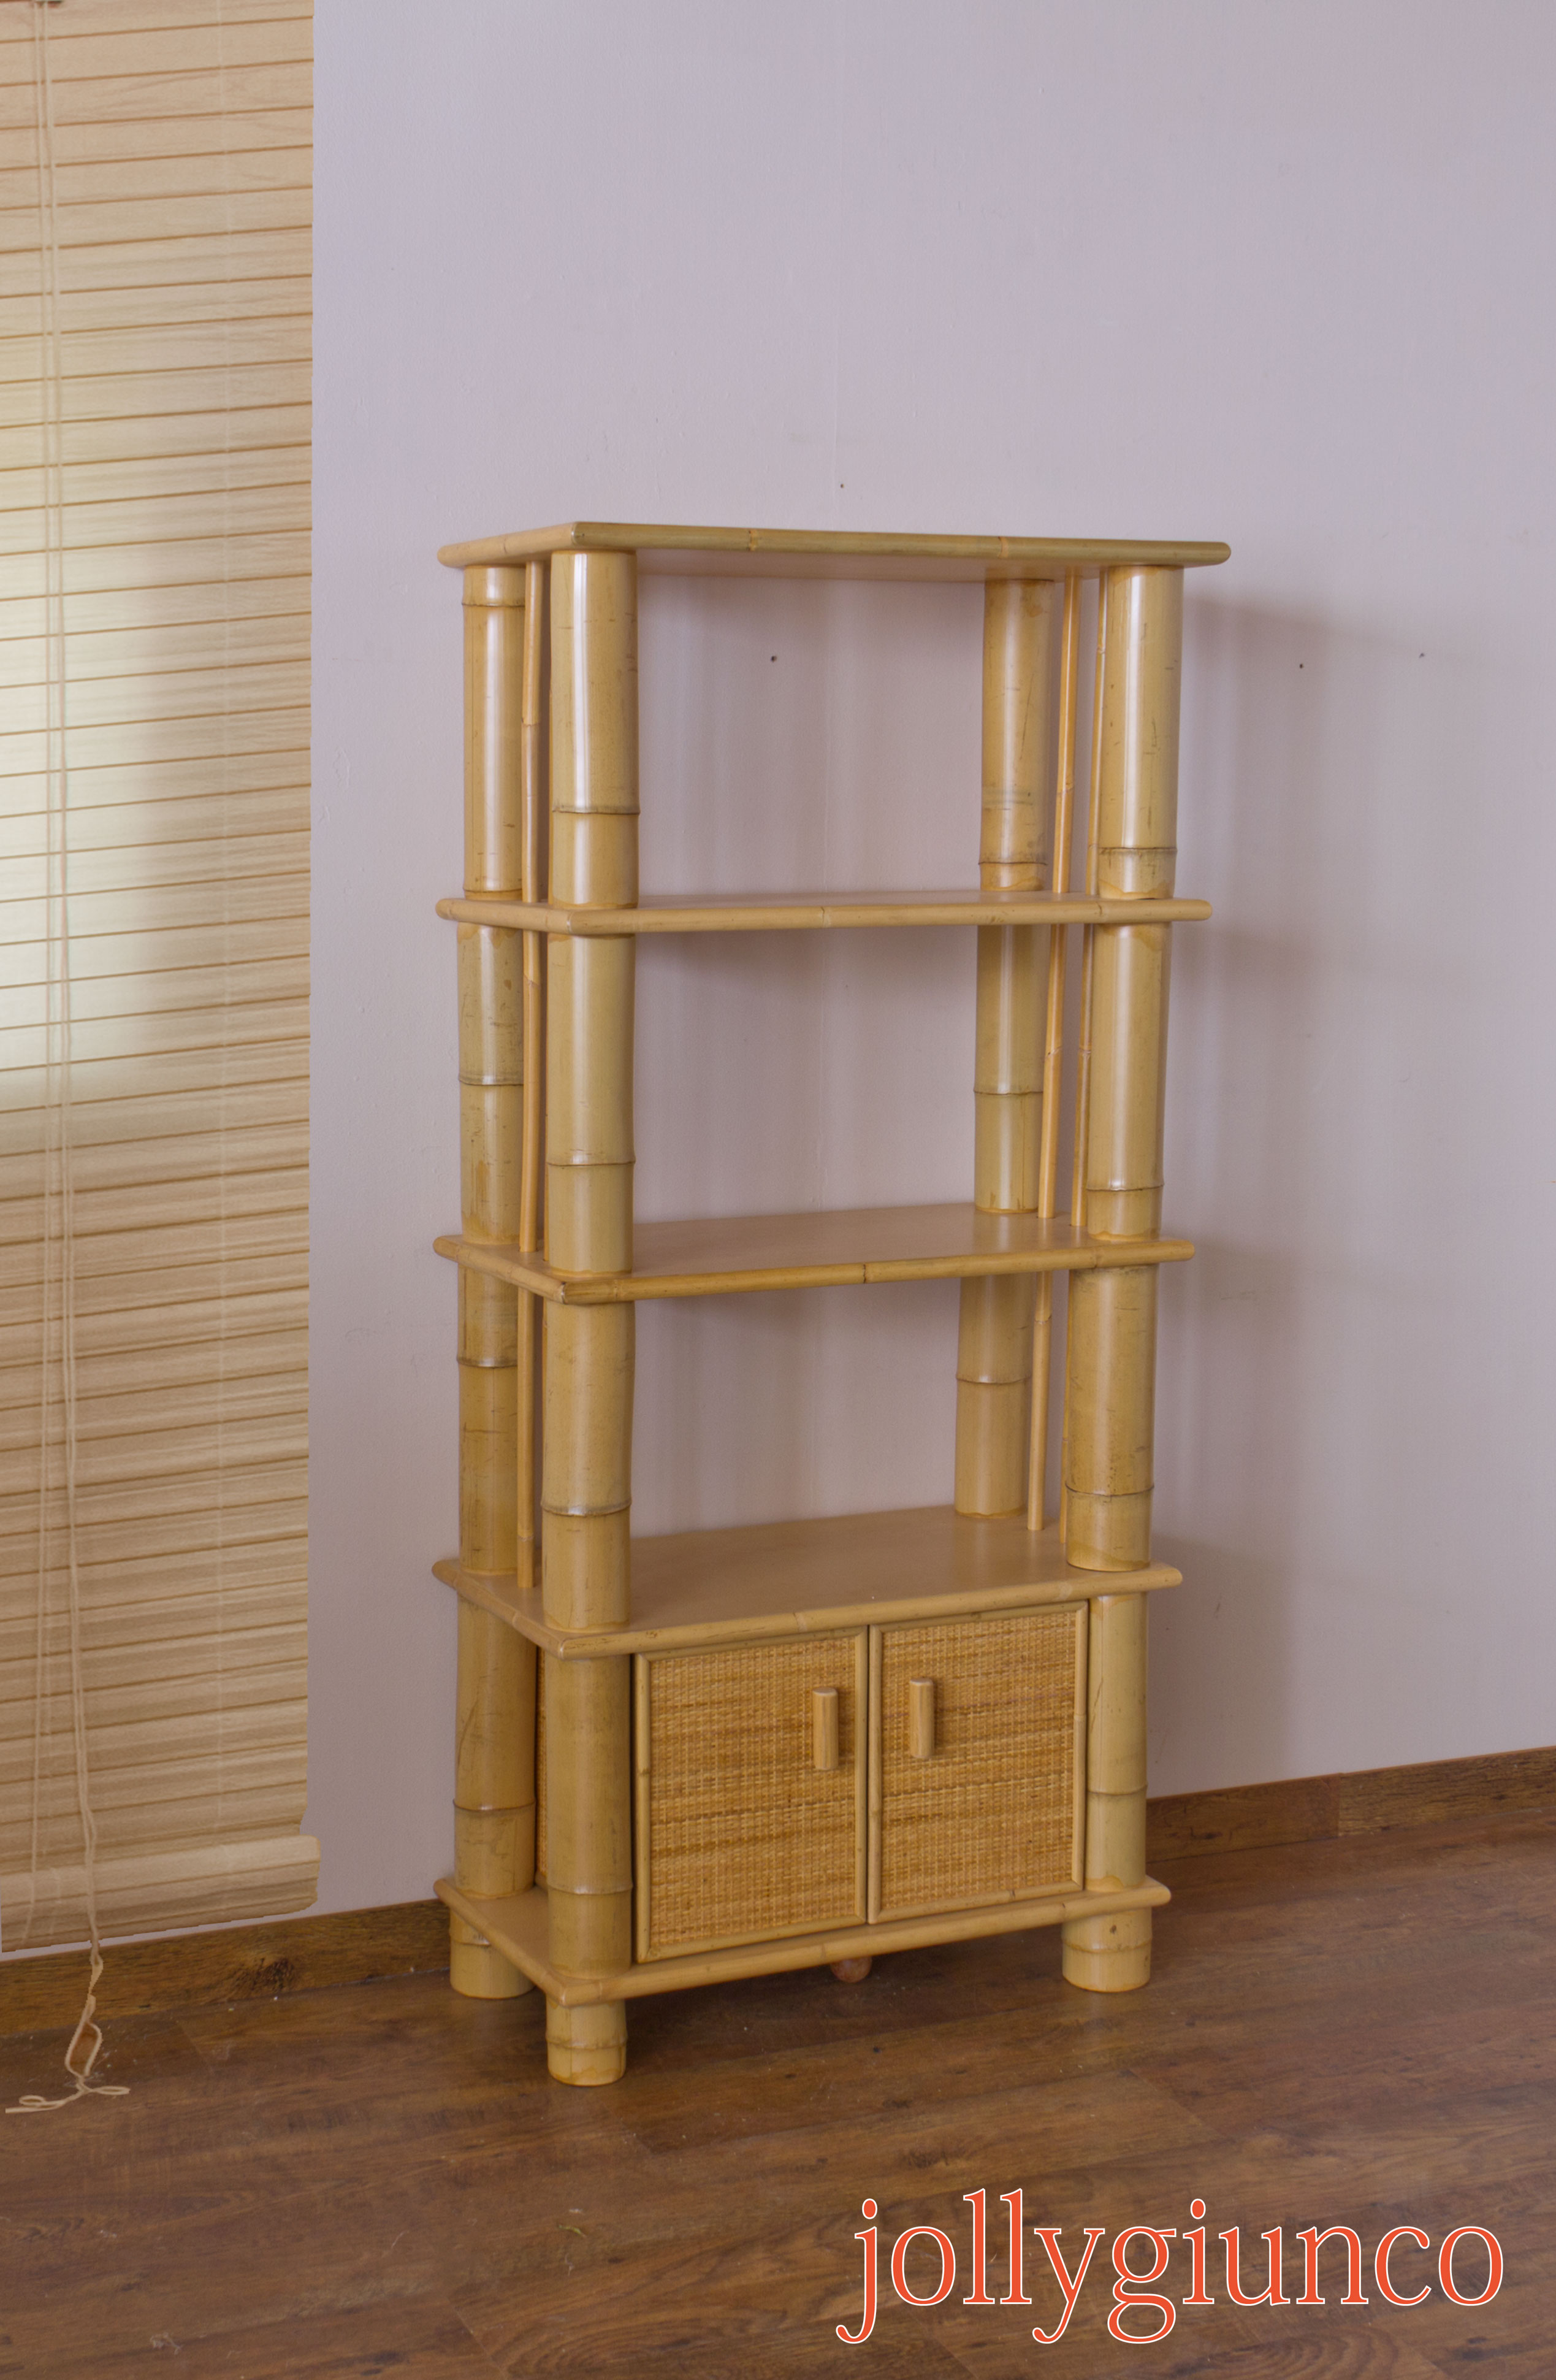 Mobili bagno bamboo stunning tappeto in bamb with mobili bagno bamboo stunning canne di bamboo - Mobili in bamboo ...